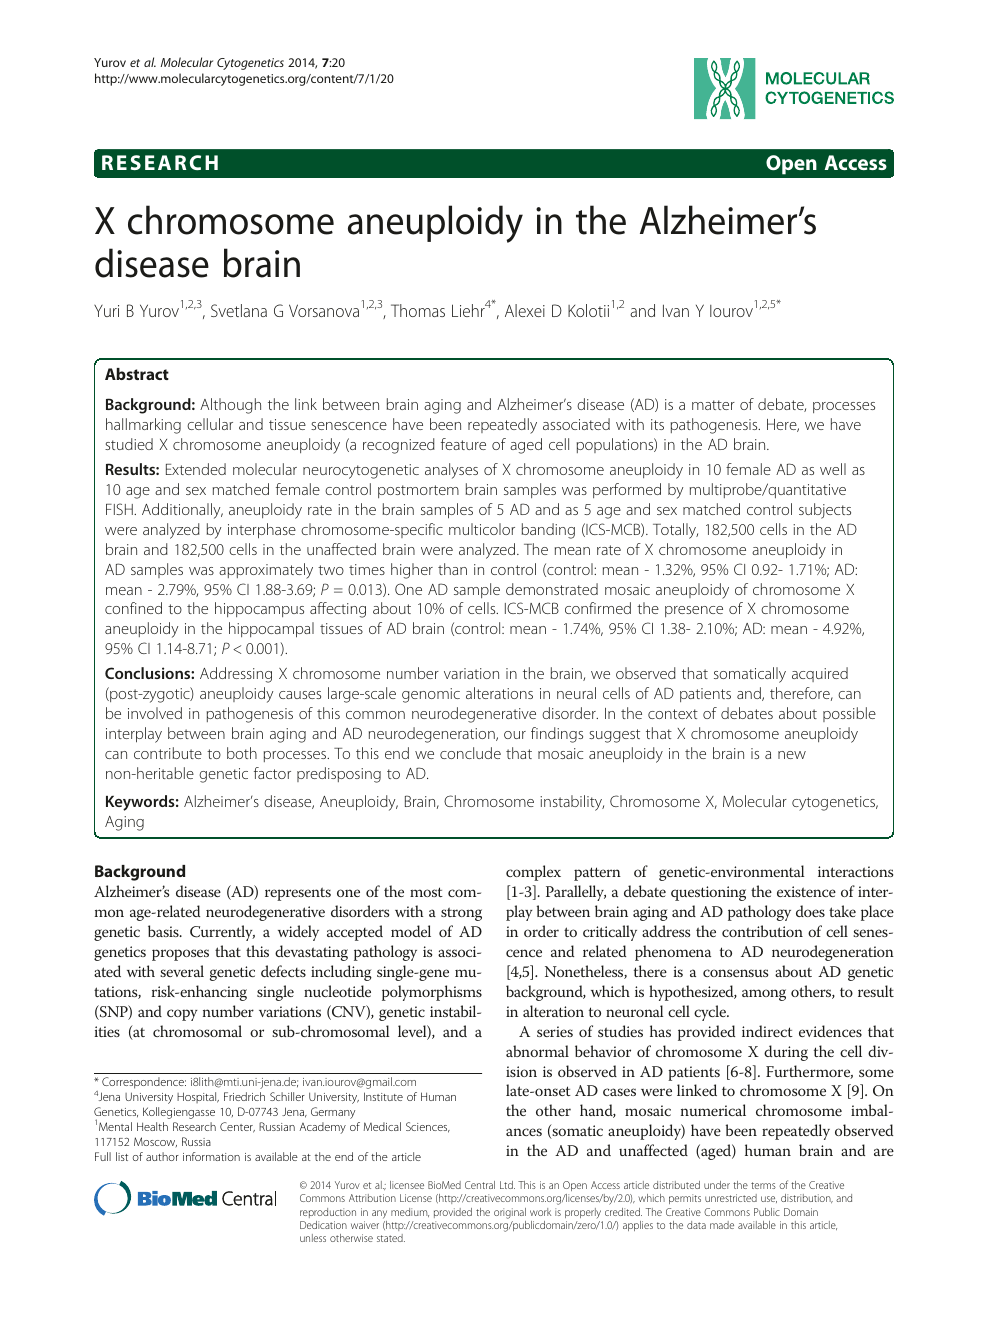 Five Ways In Which Postmortem Brain >> X Chromosome Aneuploidy In The Alzheimer S Disease Brain Topic Of